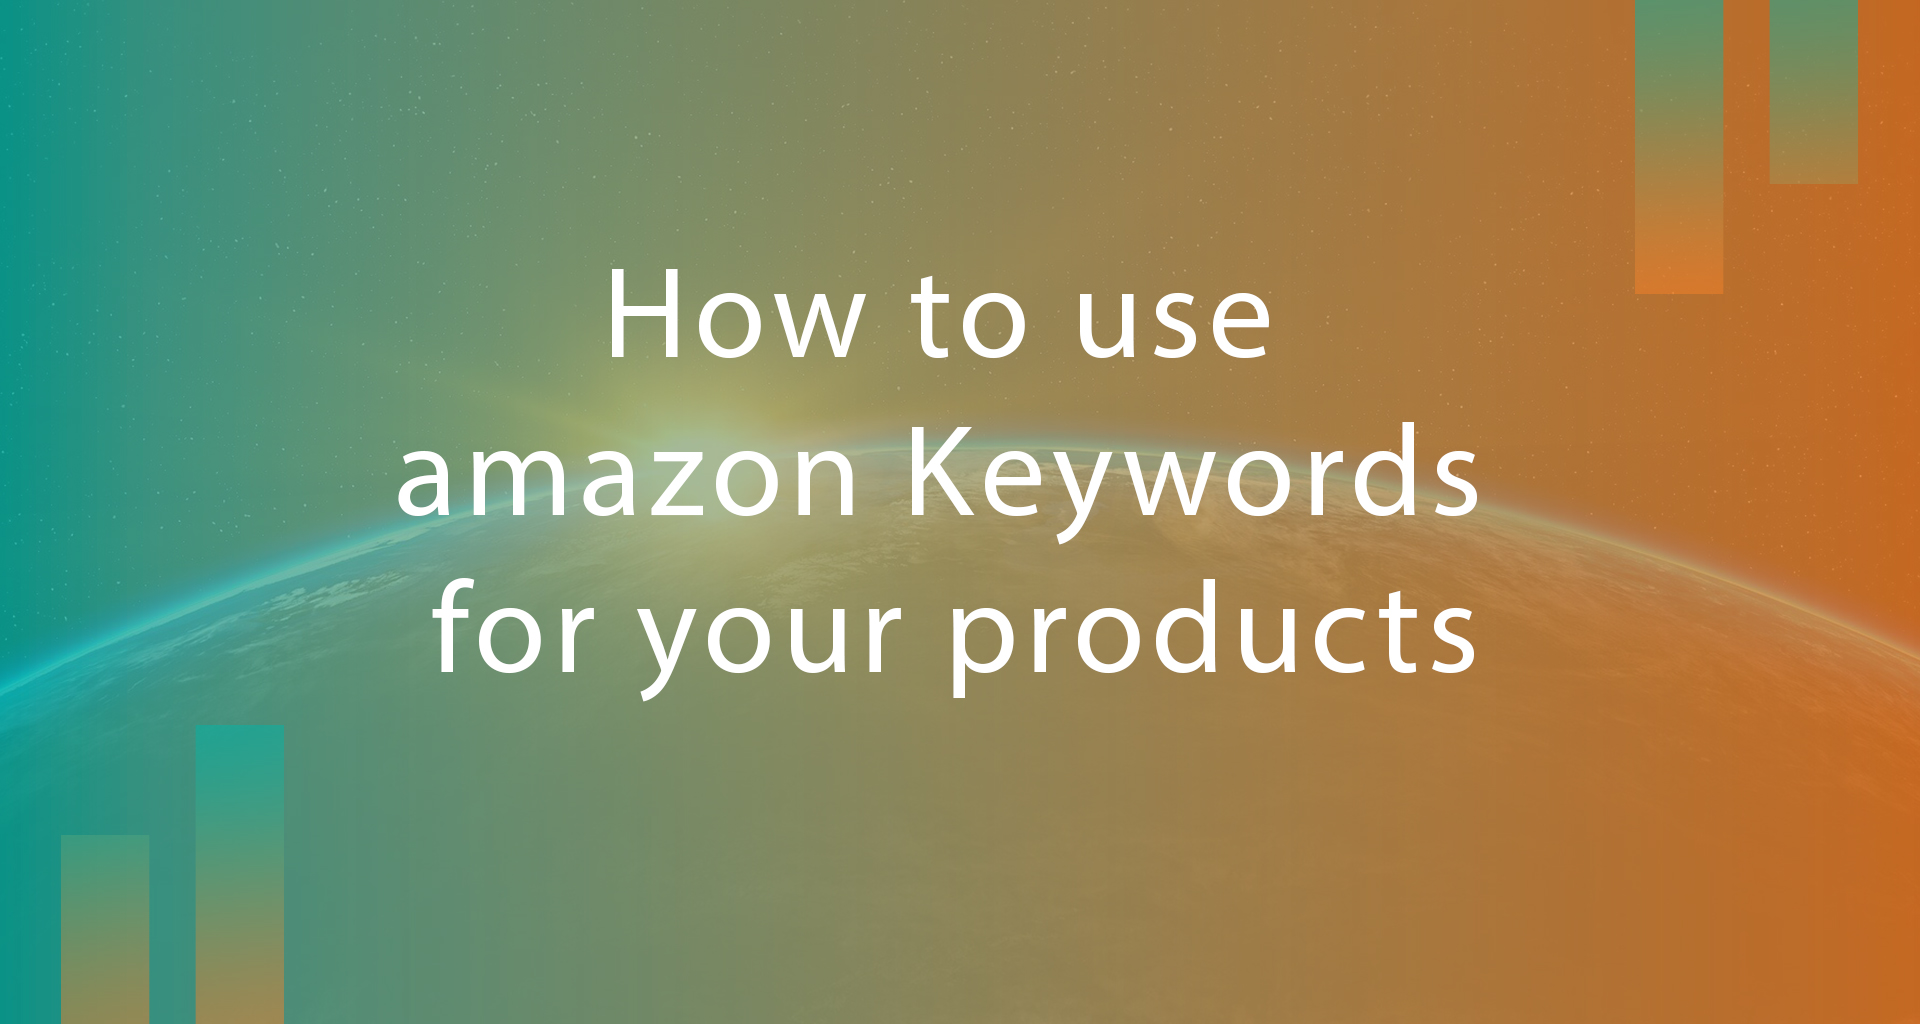 How to use amazon Keywords for your products